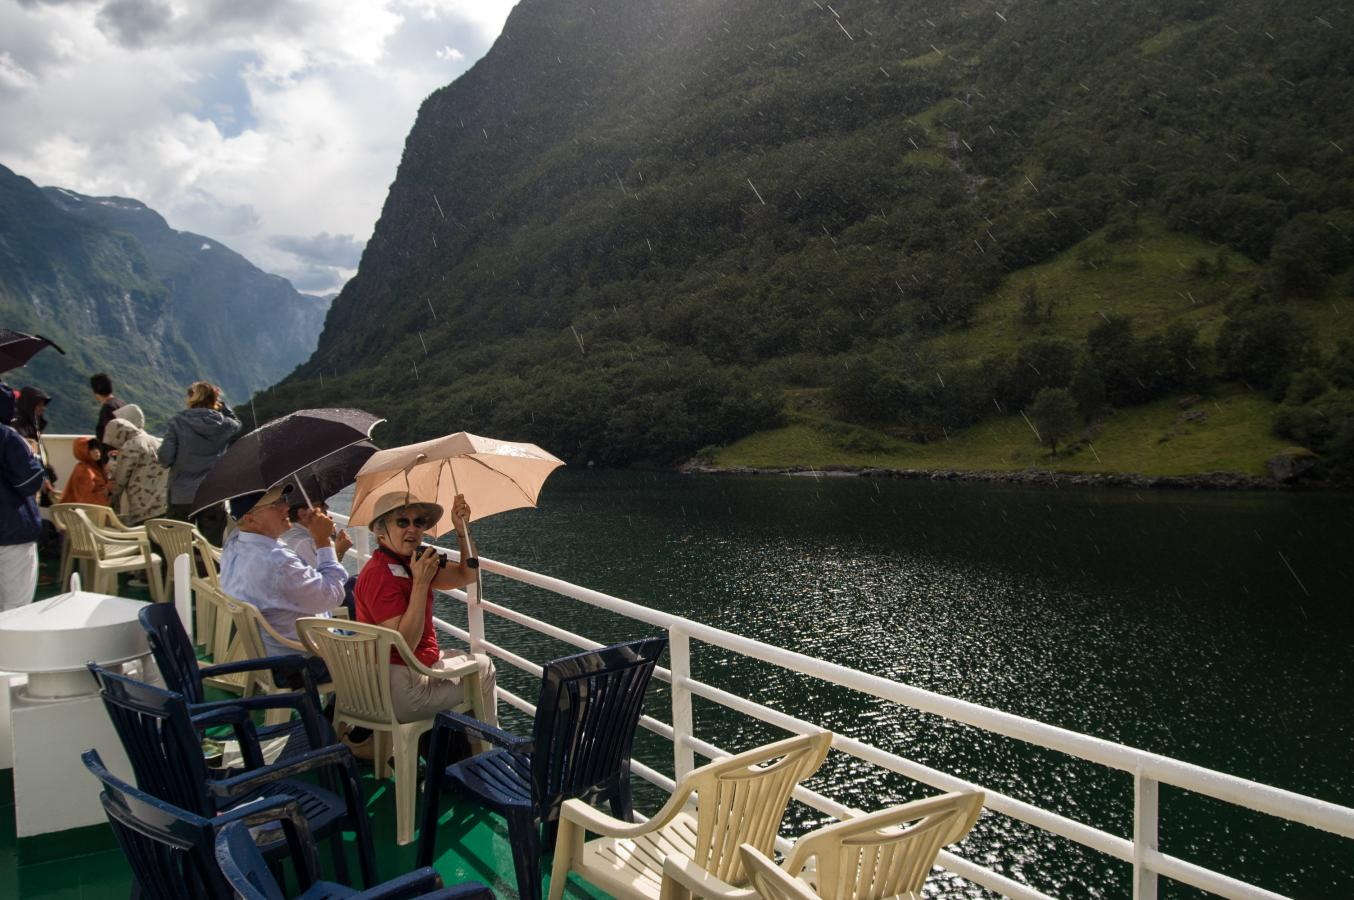 mini-rain-shower-during-the-mini-cruise-on-the-sognefjord-norway-2006